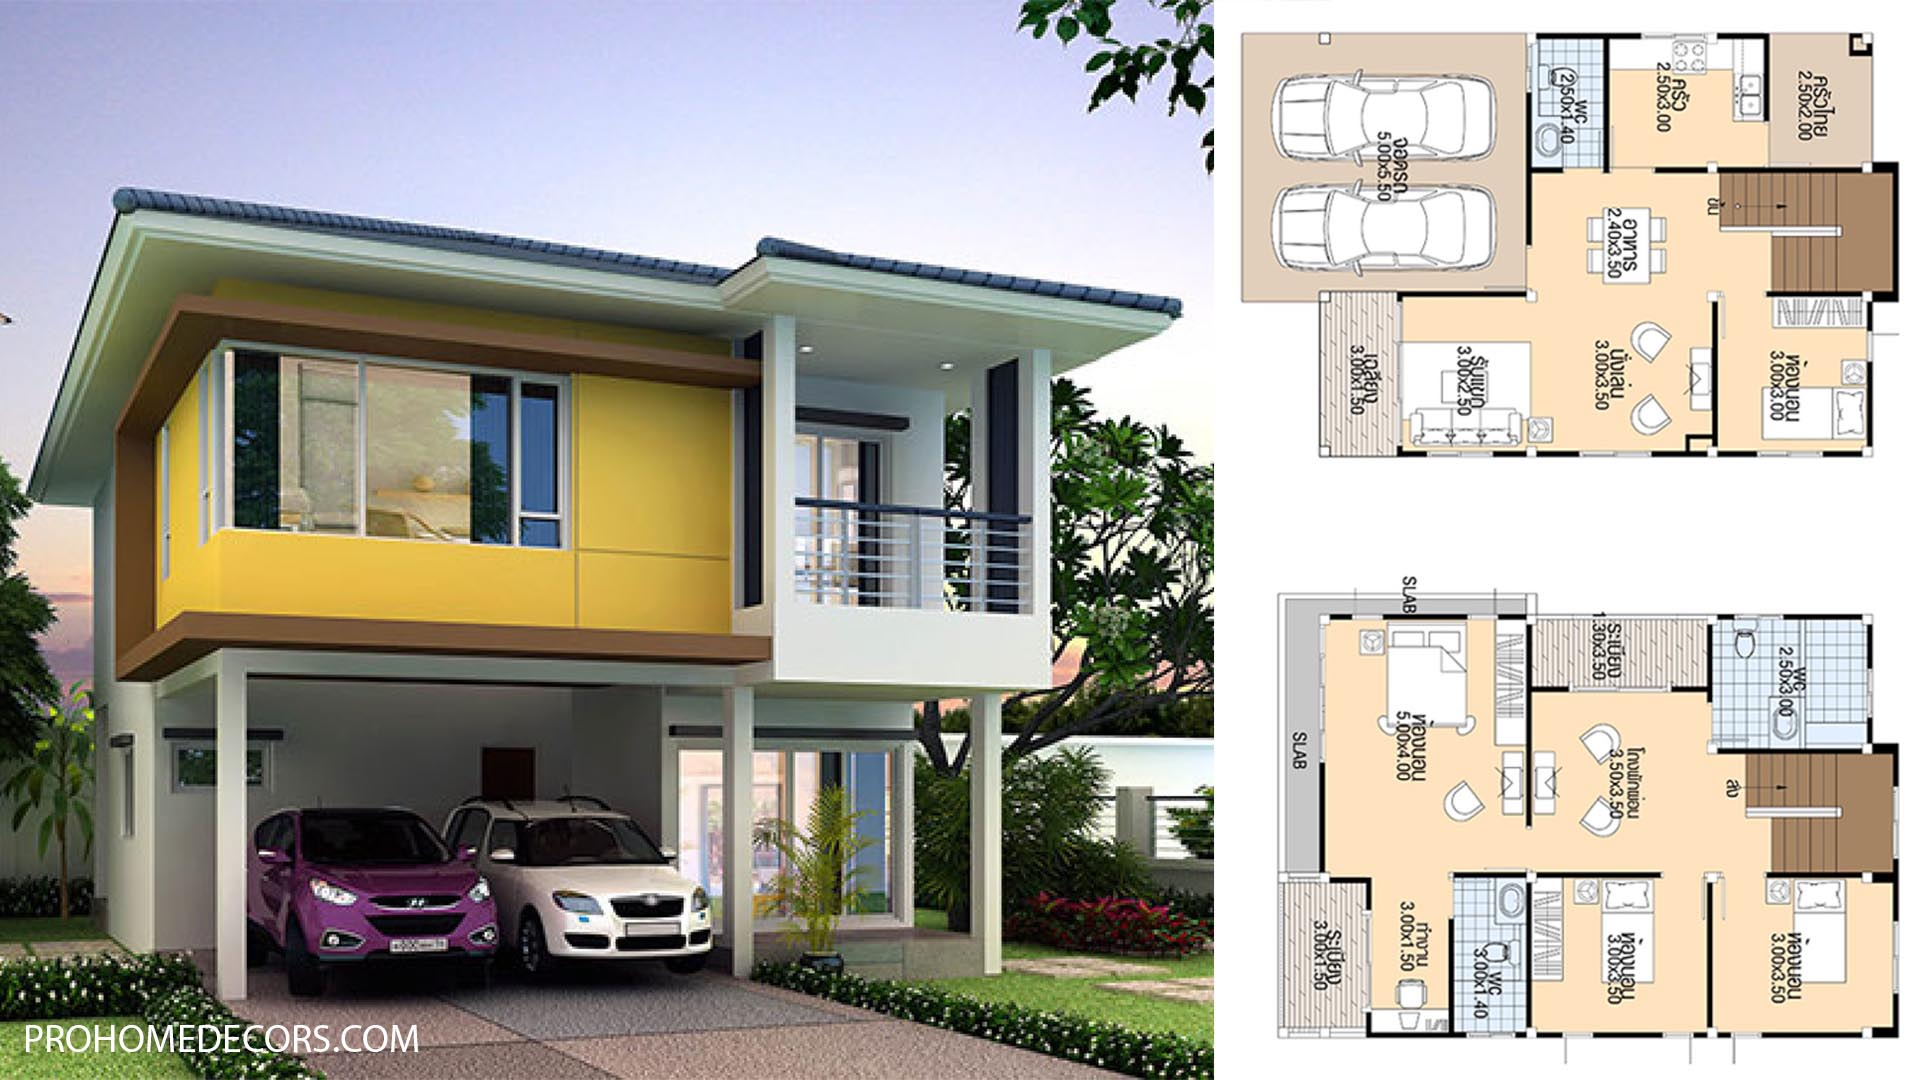 House Plans 8×10.5 with 4 bedrooms